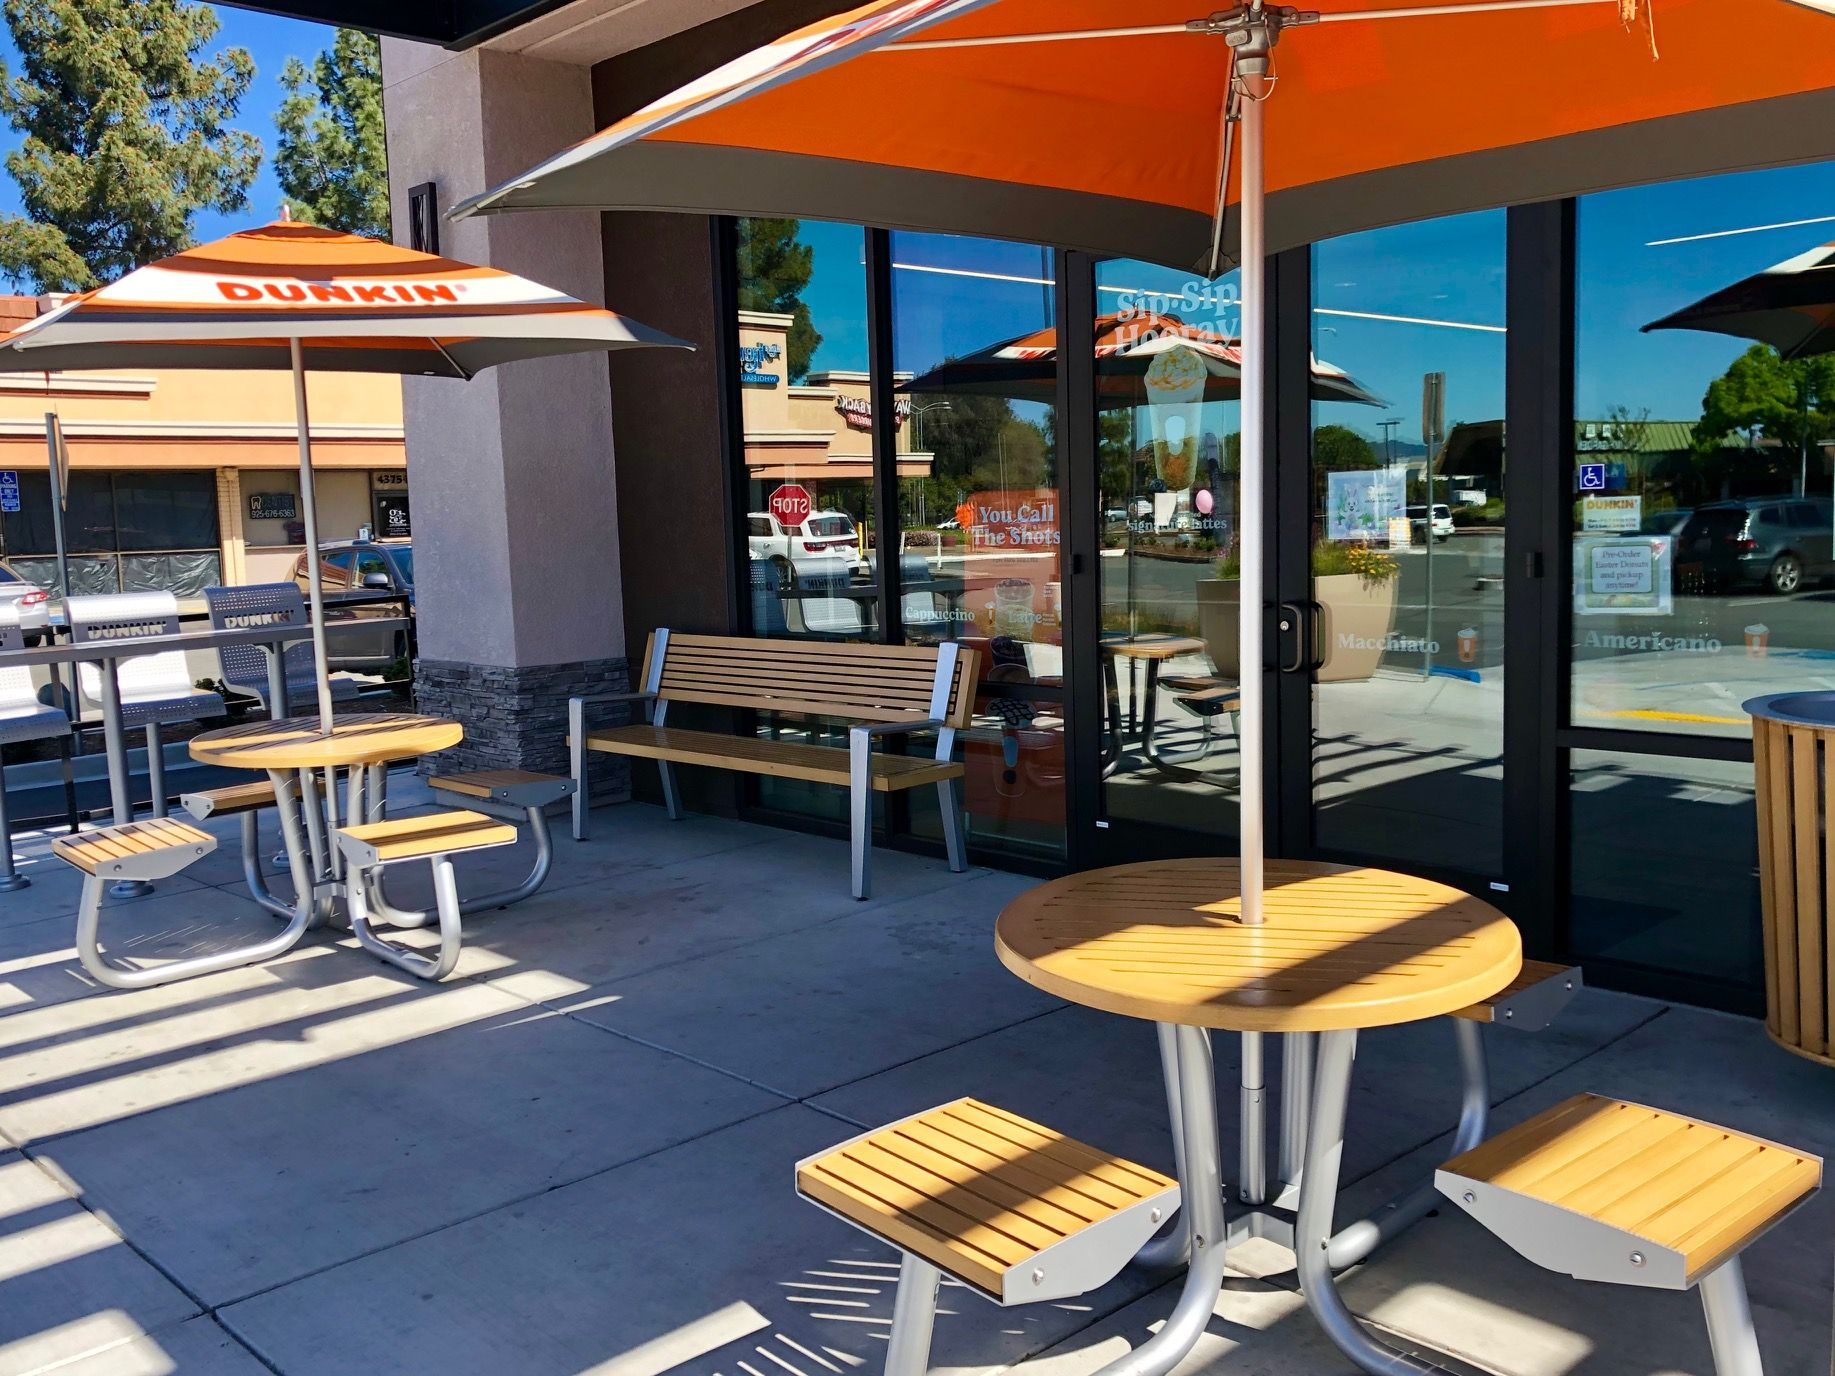 Dunkin donuts custom outdoor seating